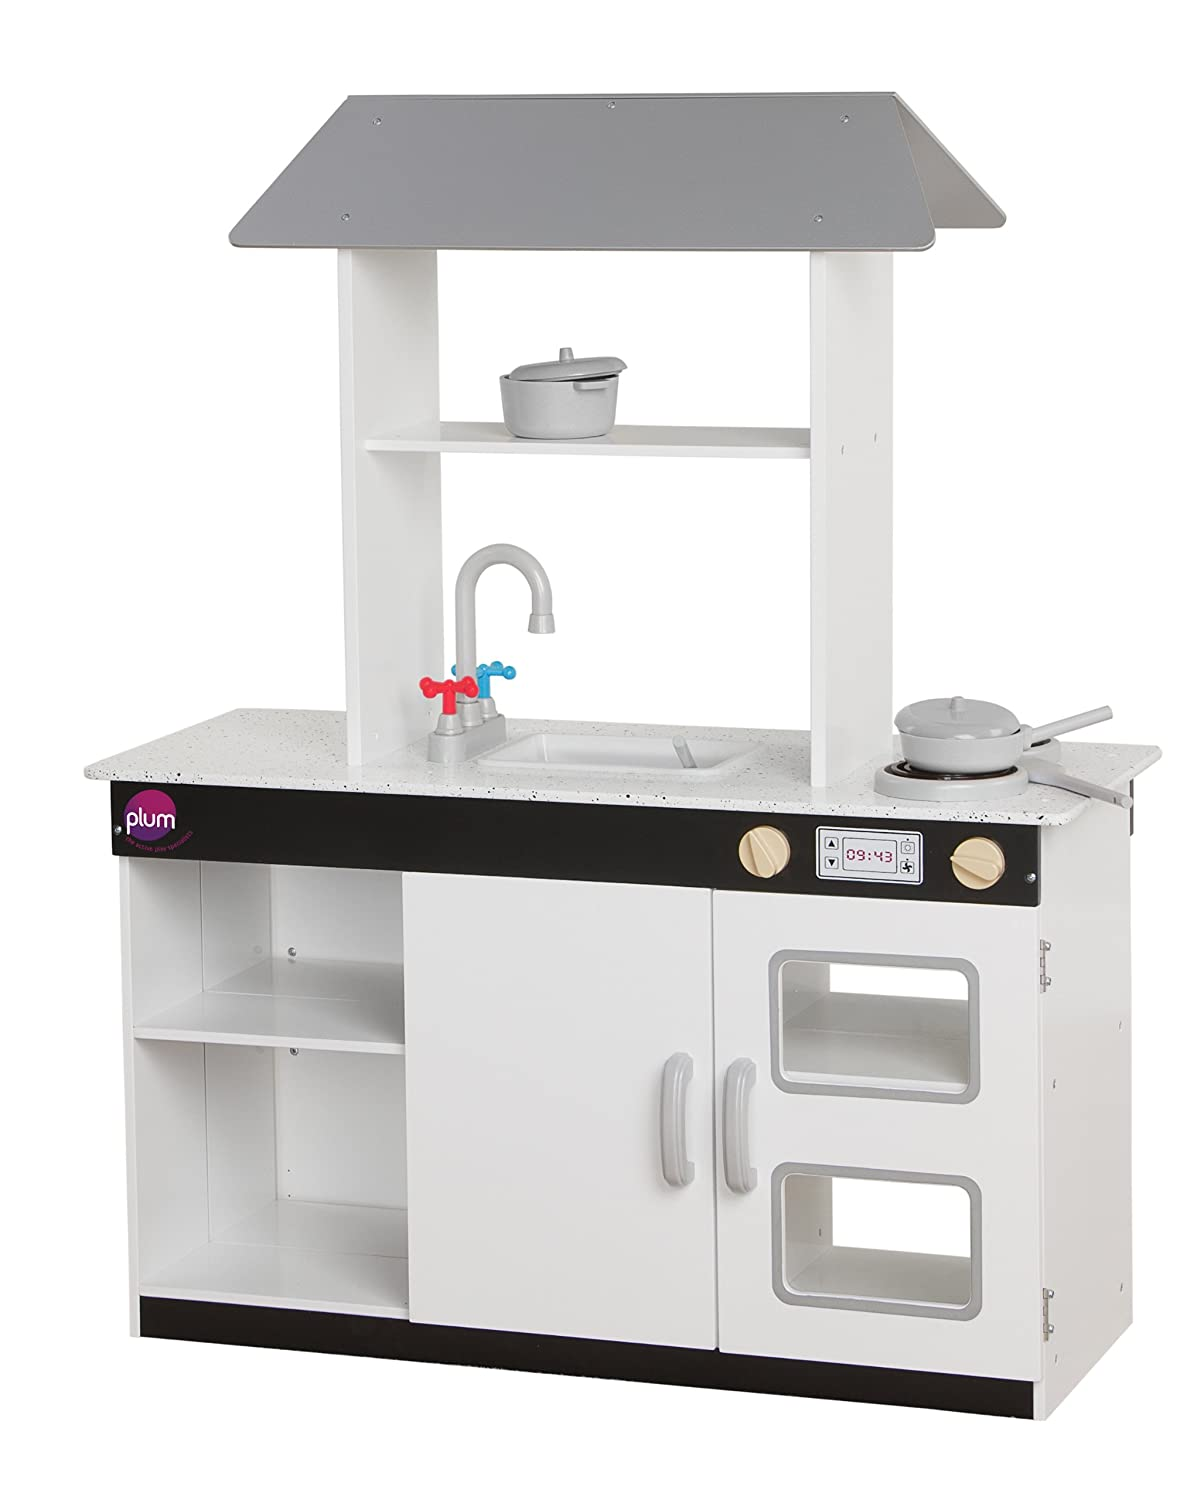 Plum® Boston Wooden Role Play Kitchen With Accessories: Amazon.co.uk: Toys  U0026 Games